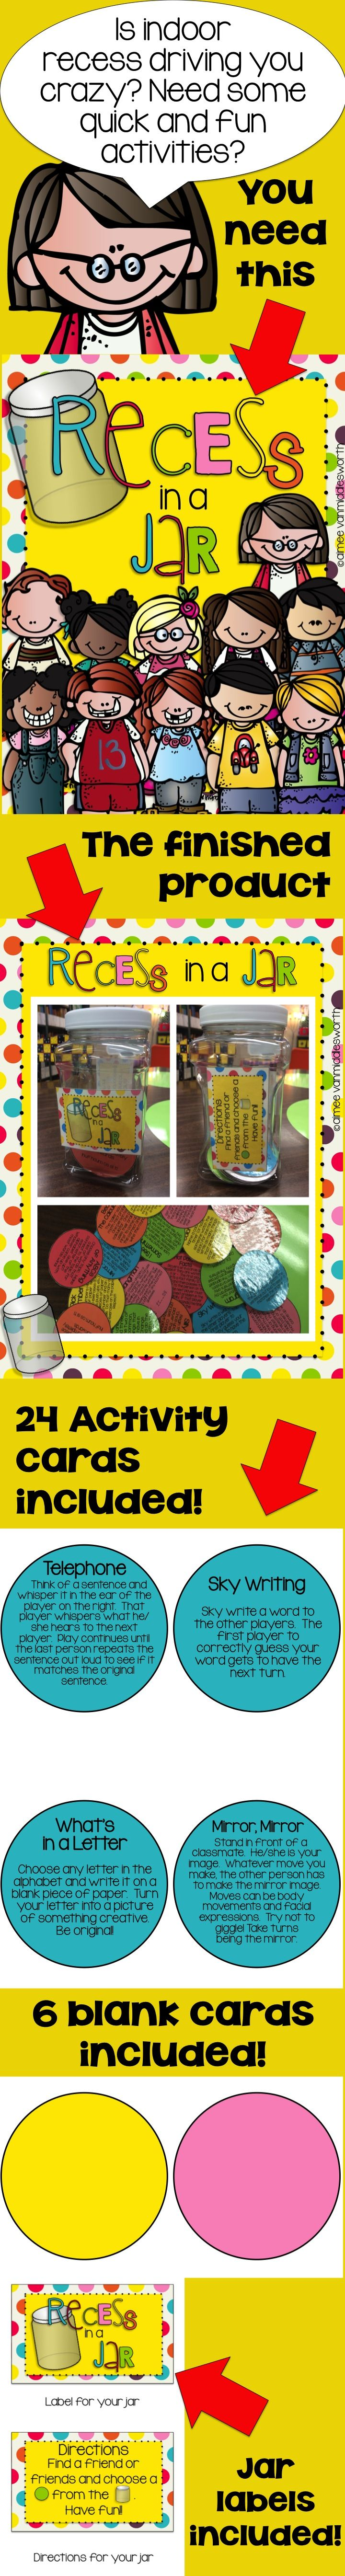 "Need ideas for indoor recess?  You need a ""Recess in a Jar"" to keep students busy all winter long!"